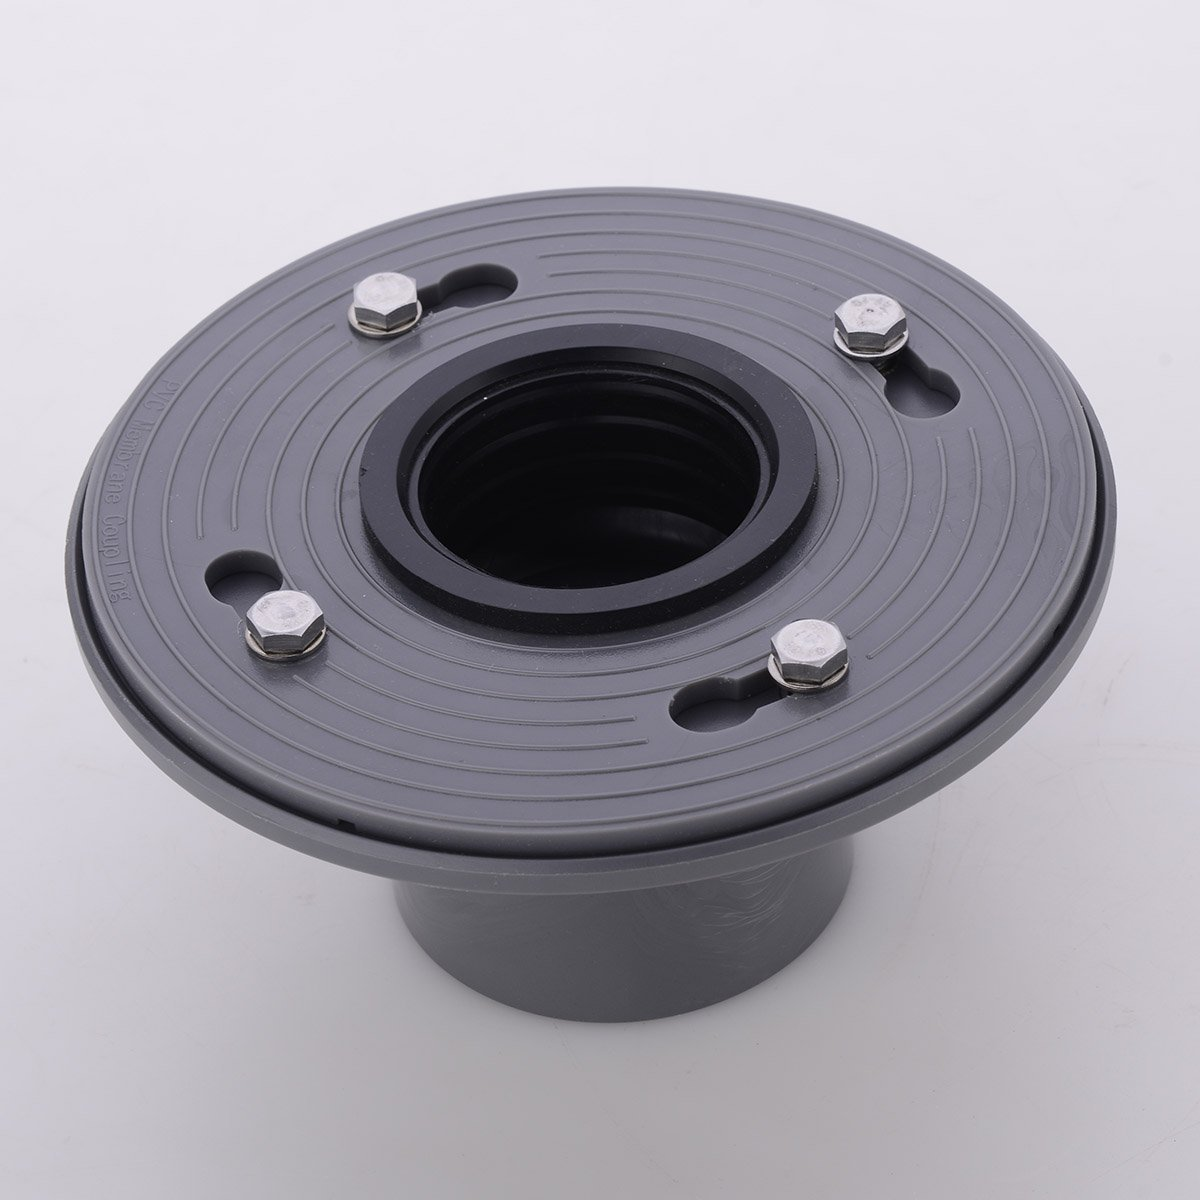 HANEBATH 2 Inch PVC Shower Drain Base with Rubber Gasket - - Amazon.com